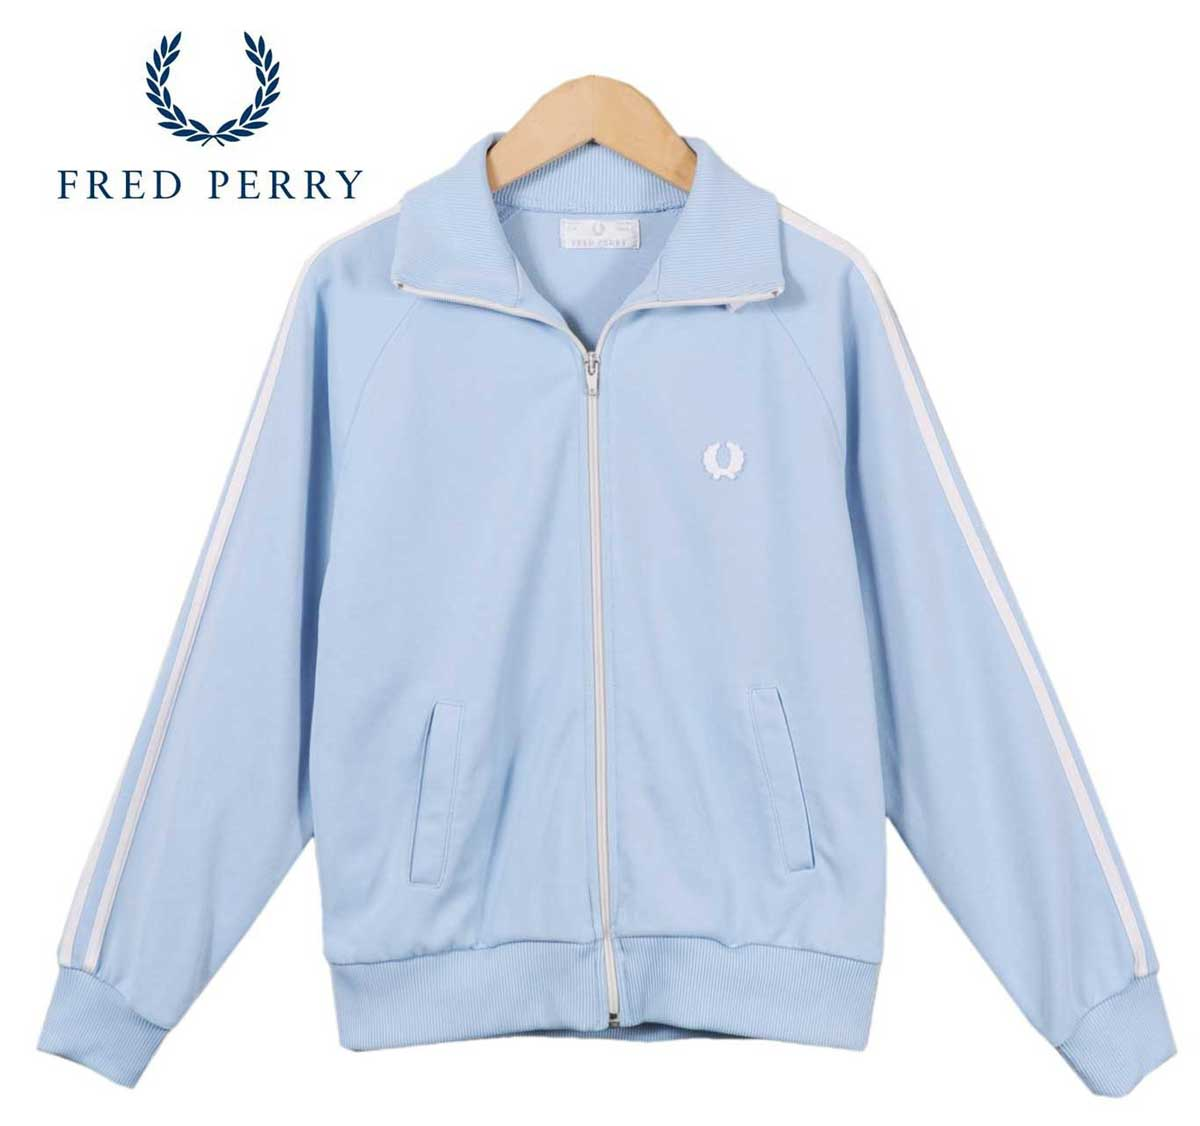 f1f6d184 Made in Portugal / FRED PERRY Fred Perry / Jersey / baby blue x white ...